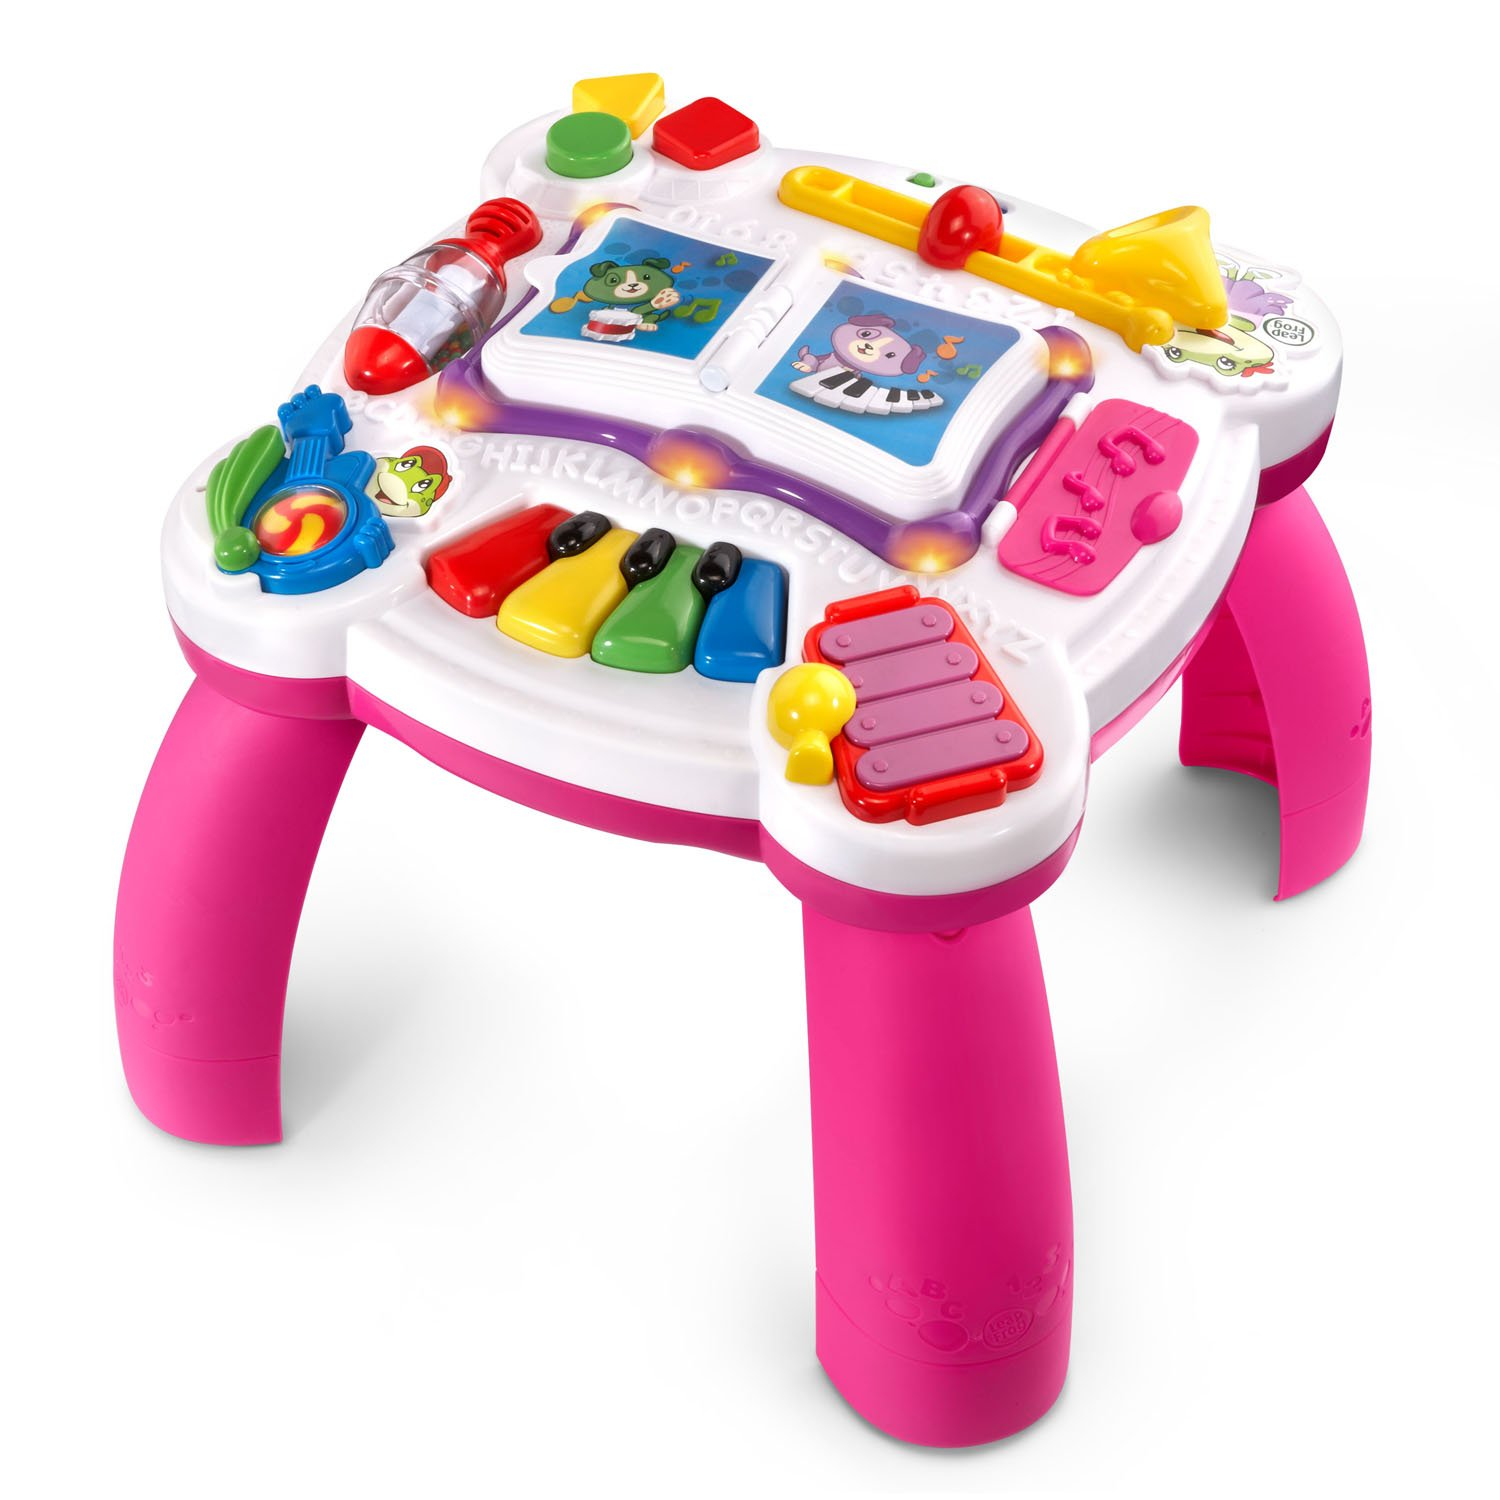 Attrayant LeapFrog Learn And Groove Musical Table Activity Center Amazon Exclusive,  Pink